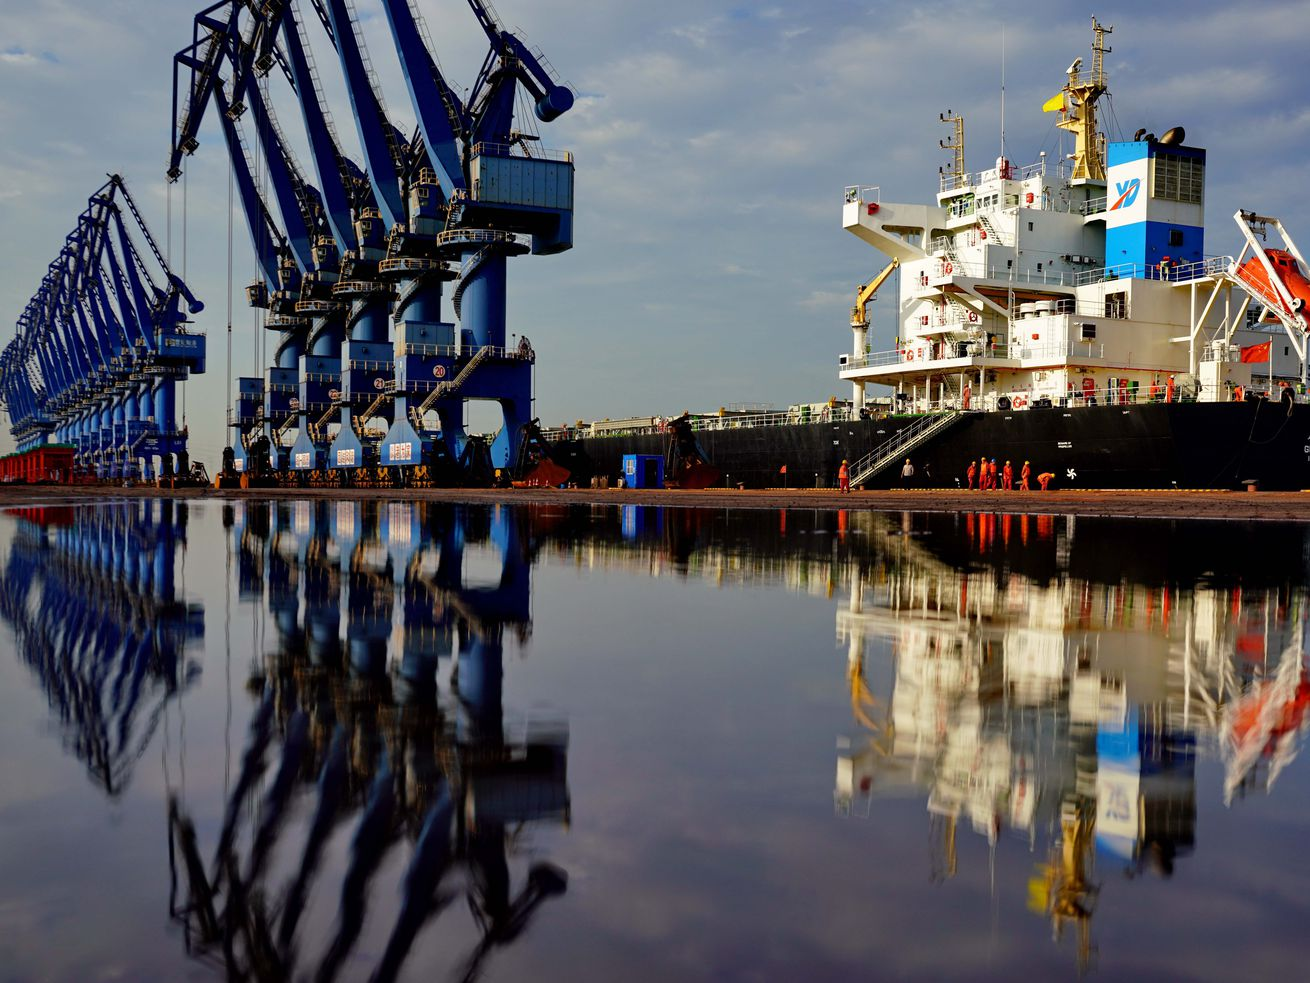 Blue cranes and a massive cargo ship are reflected in still water as the ship is loaded with goods. Workers in orange hurry across the wharf.